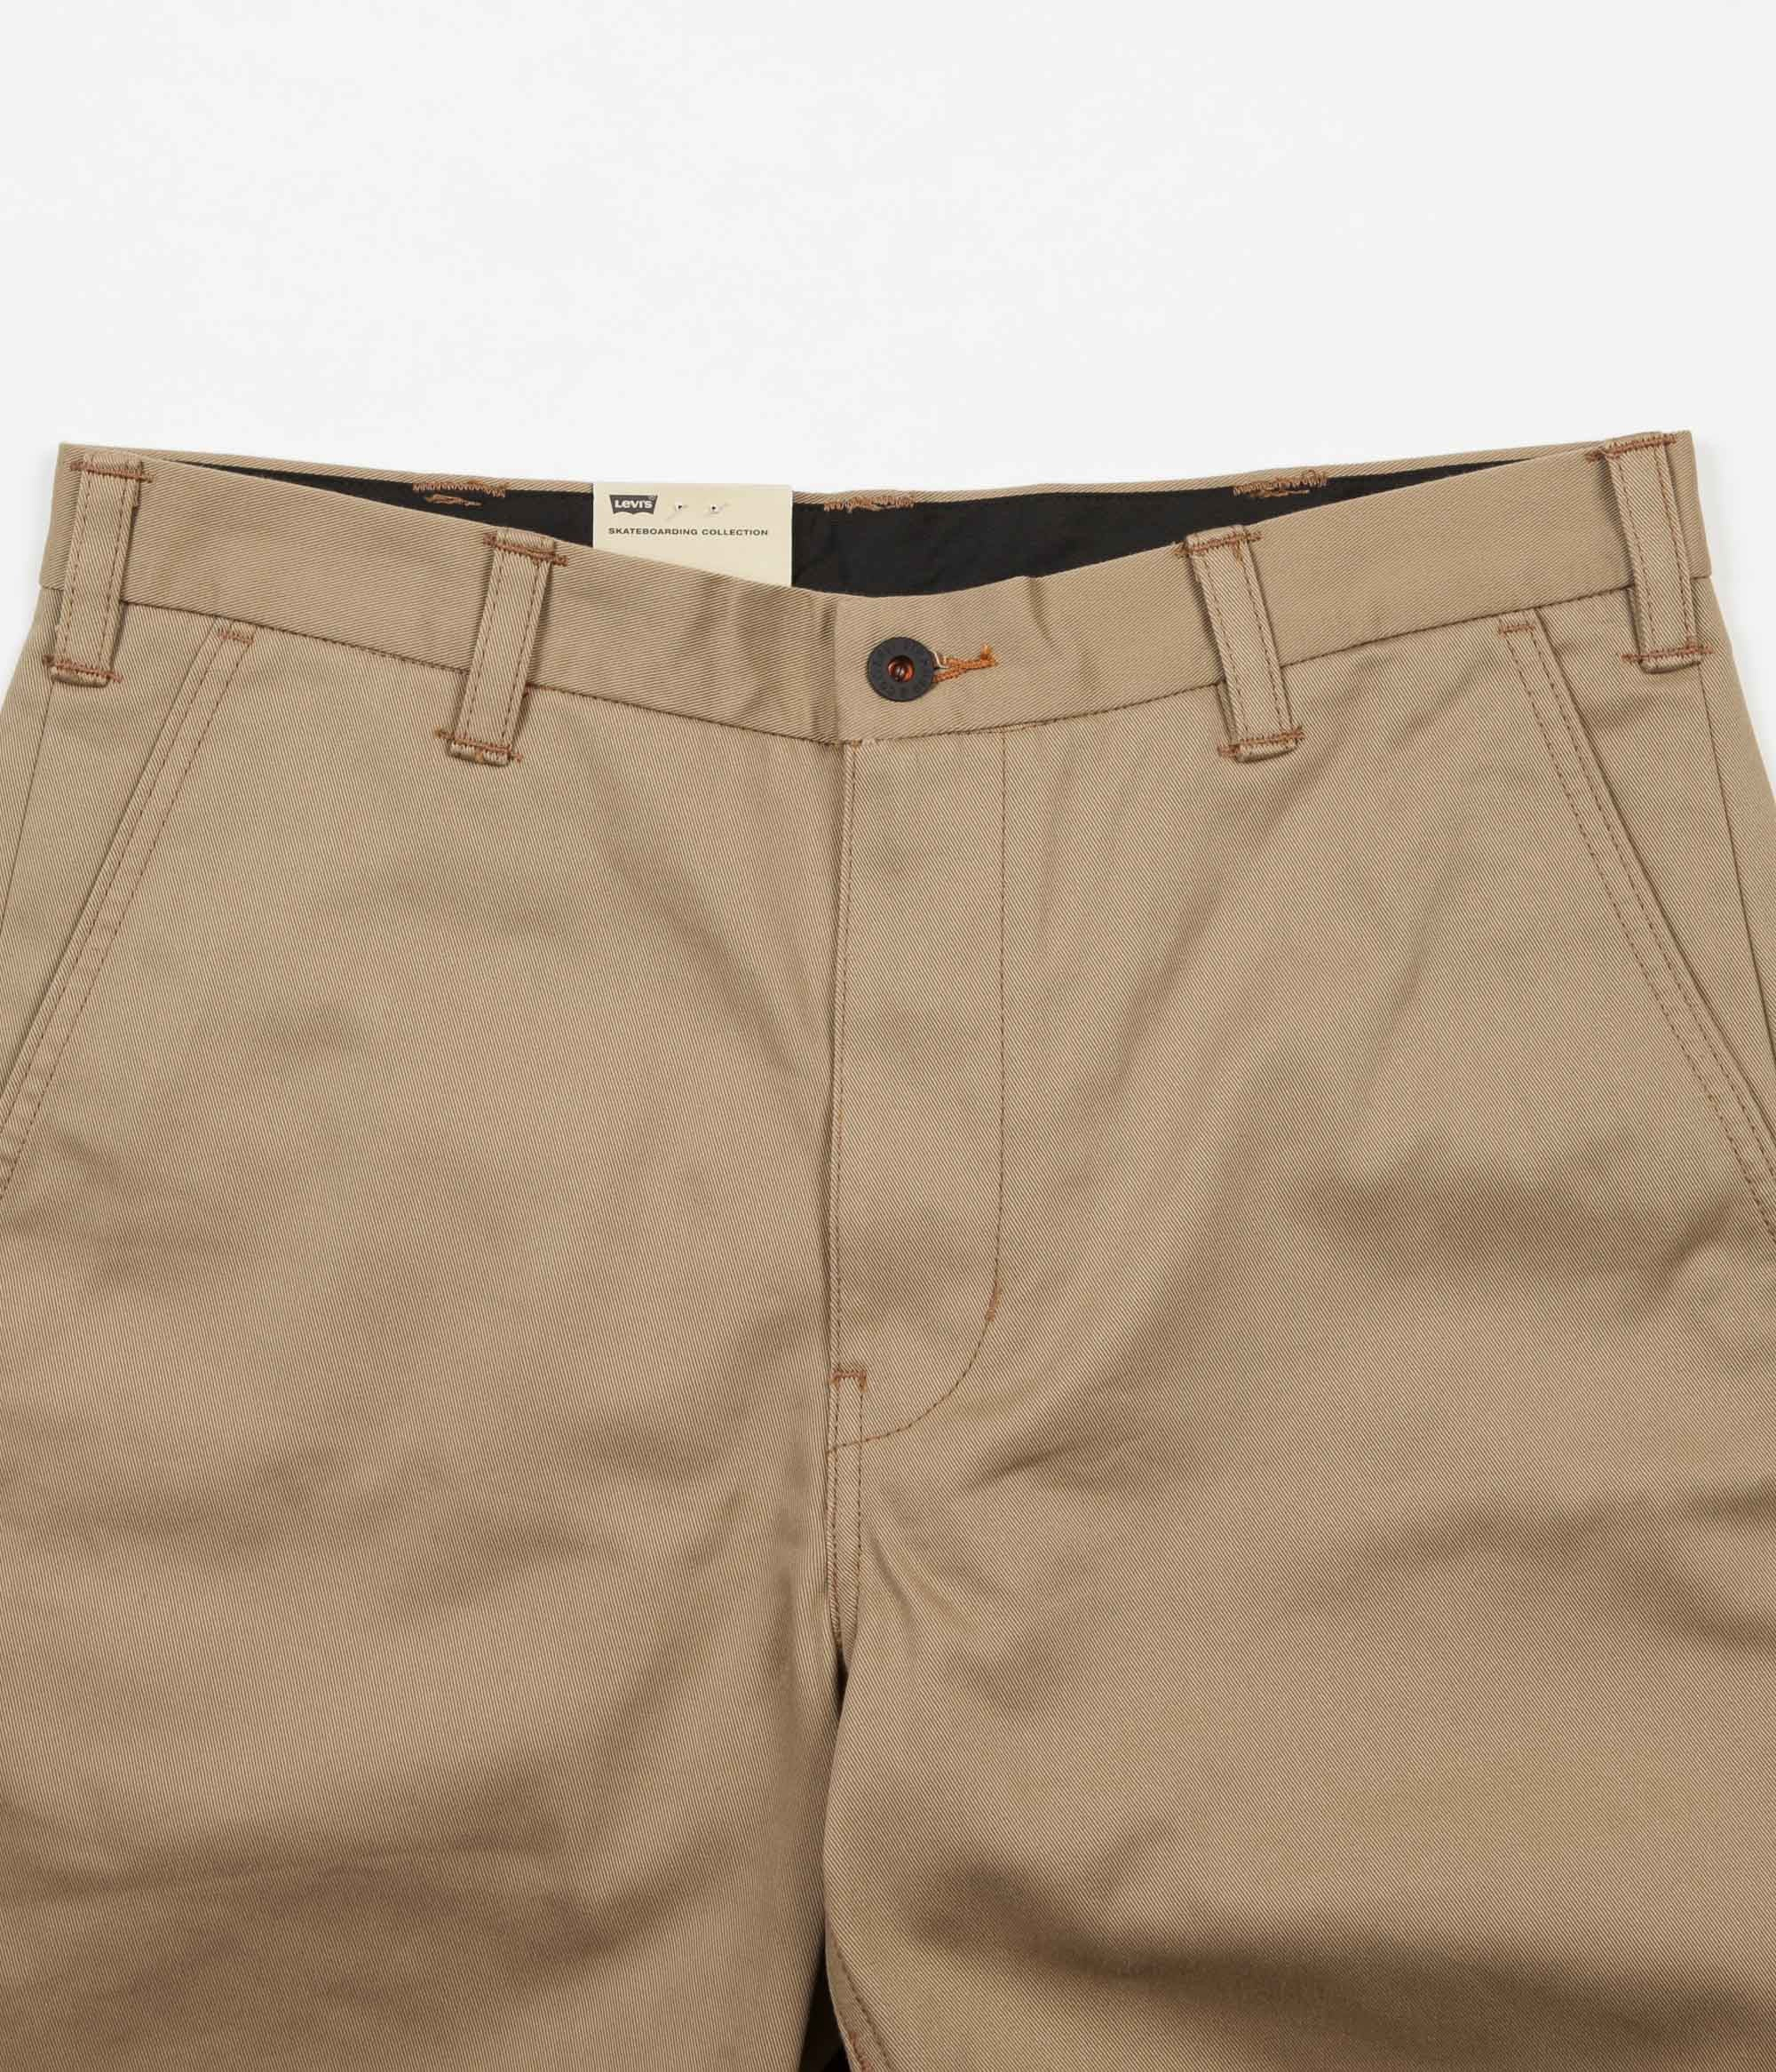 Levi's Skate Work Shorts - Harvest Gold